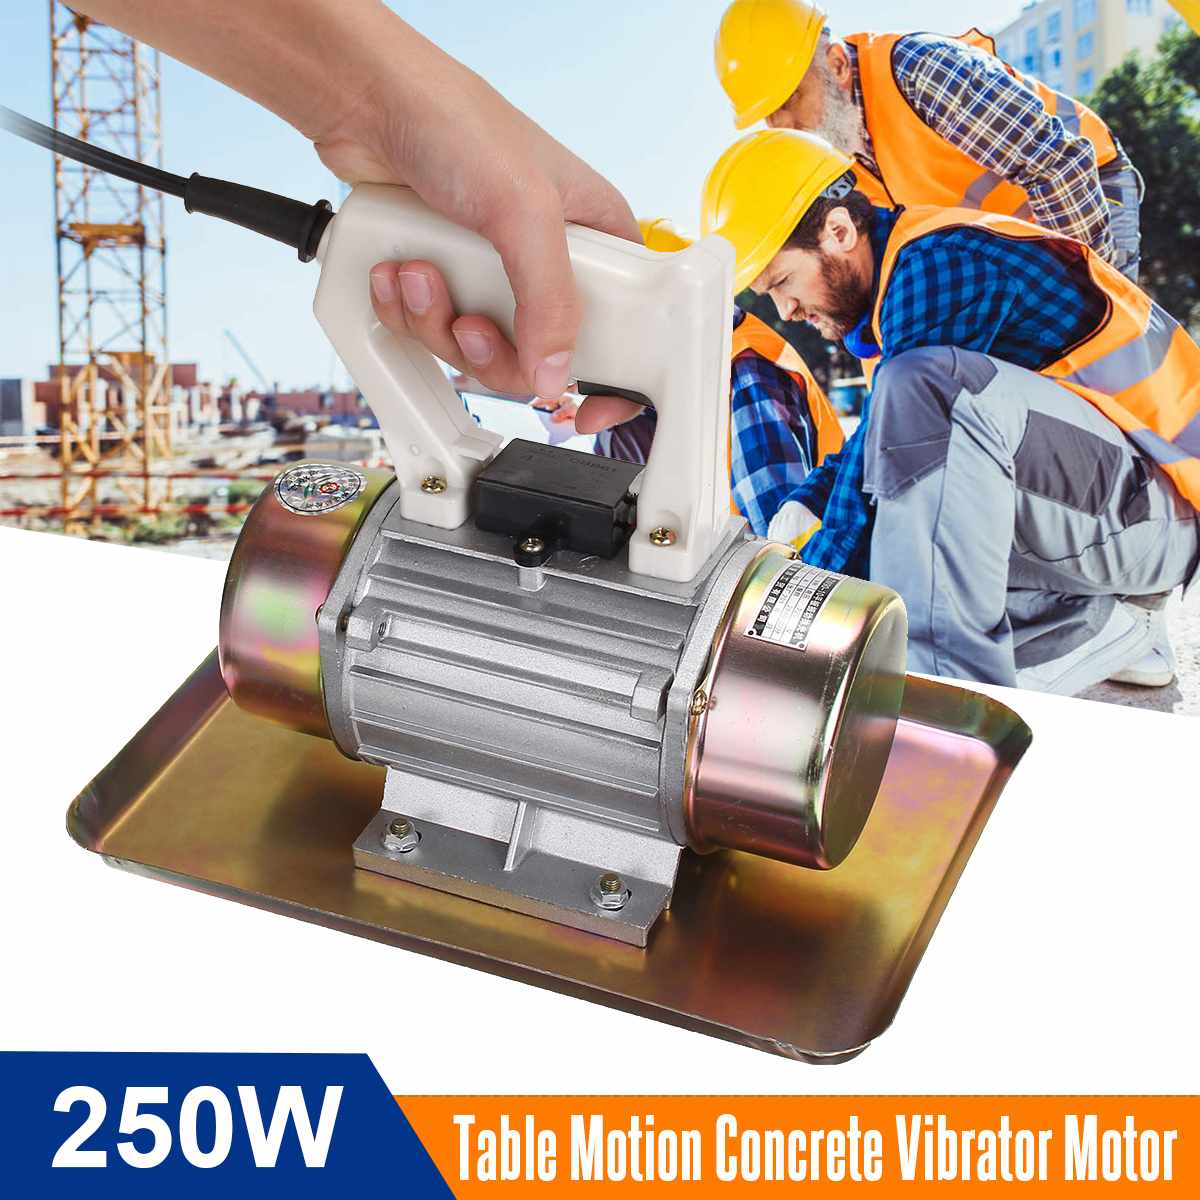 220V 250W 0.25KW Table Motion Concrete Vibrator Motor Portable Construction Tool Hand-held Concrete Vibrator Motor New